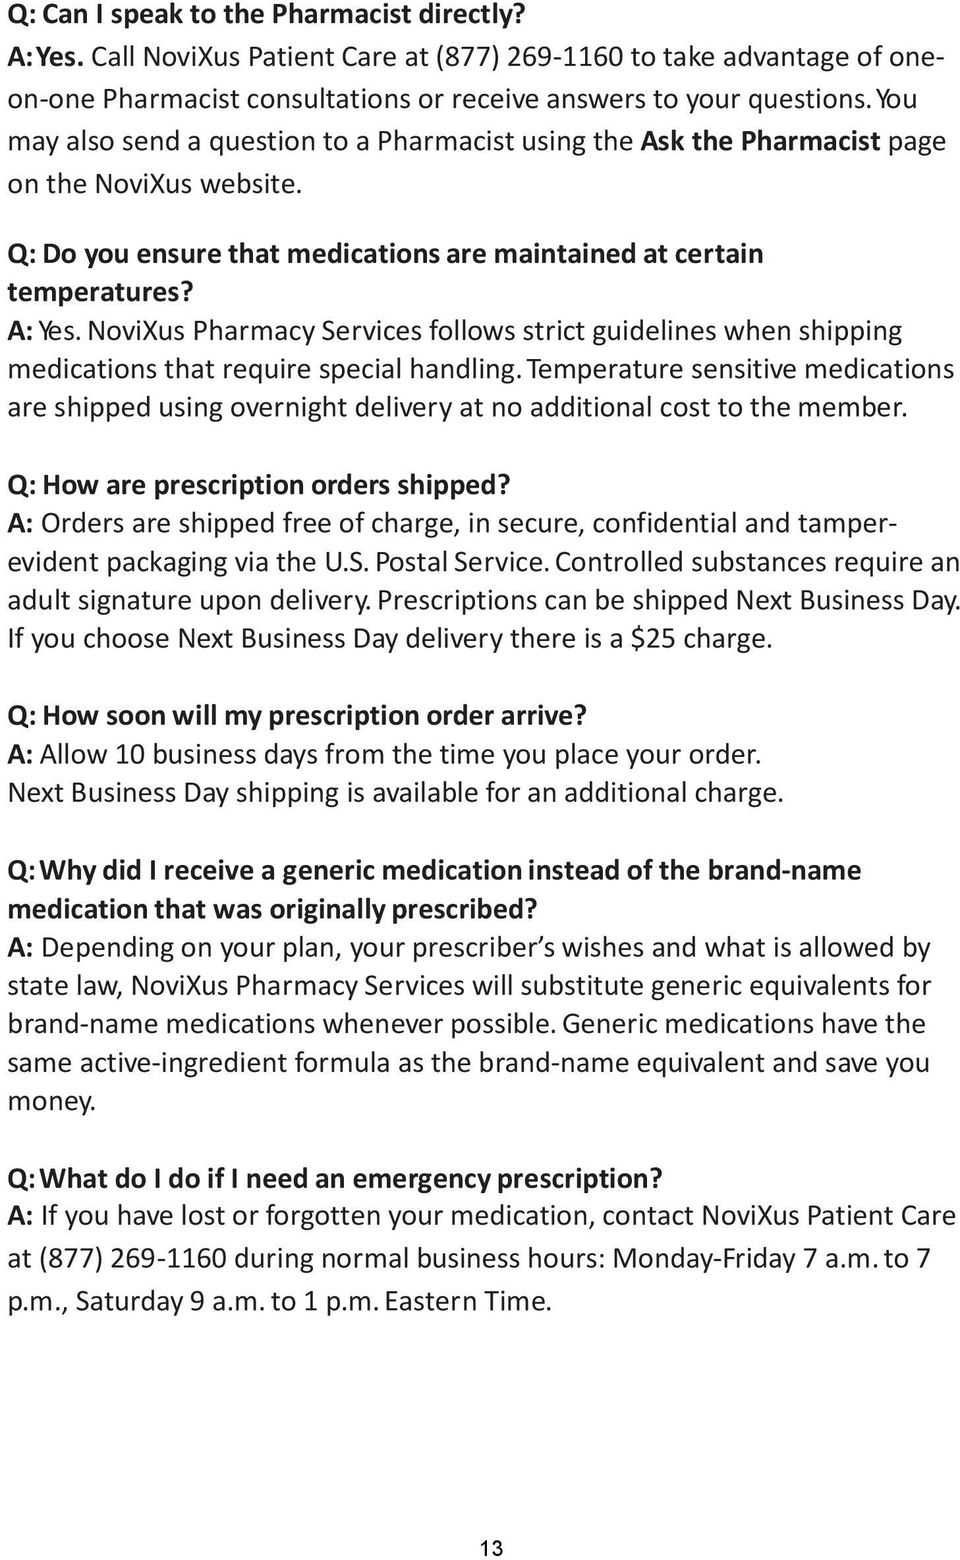 NoviXus Pharmacy Services follows strict guidelines when shipping medications that require special handling.